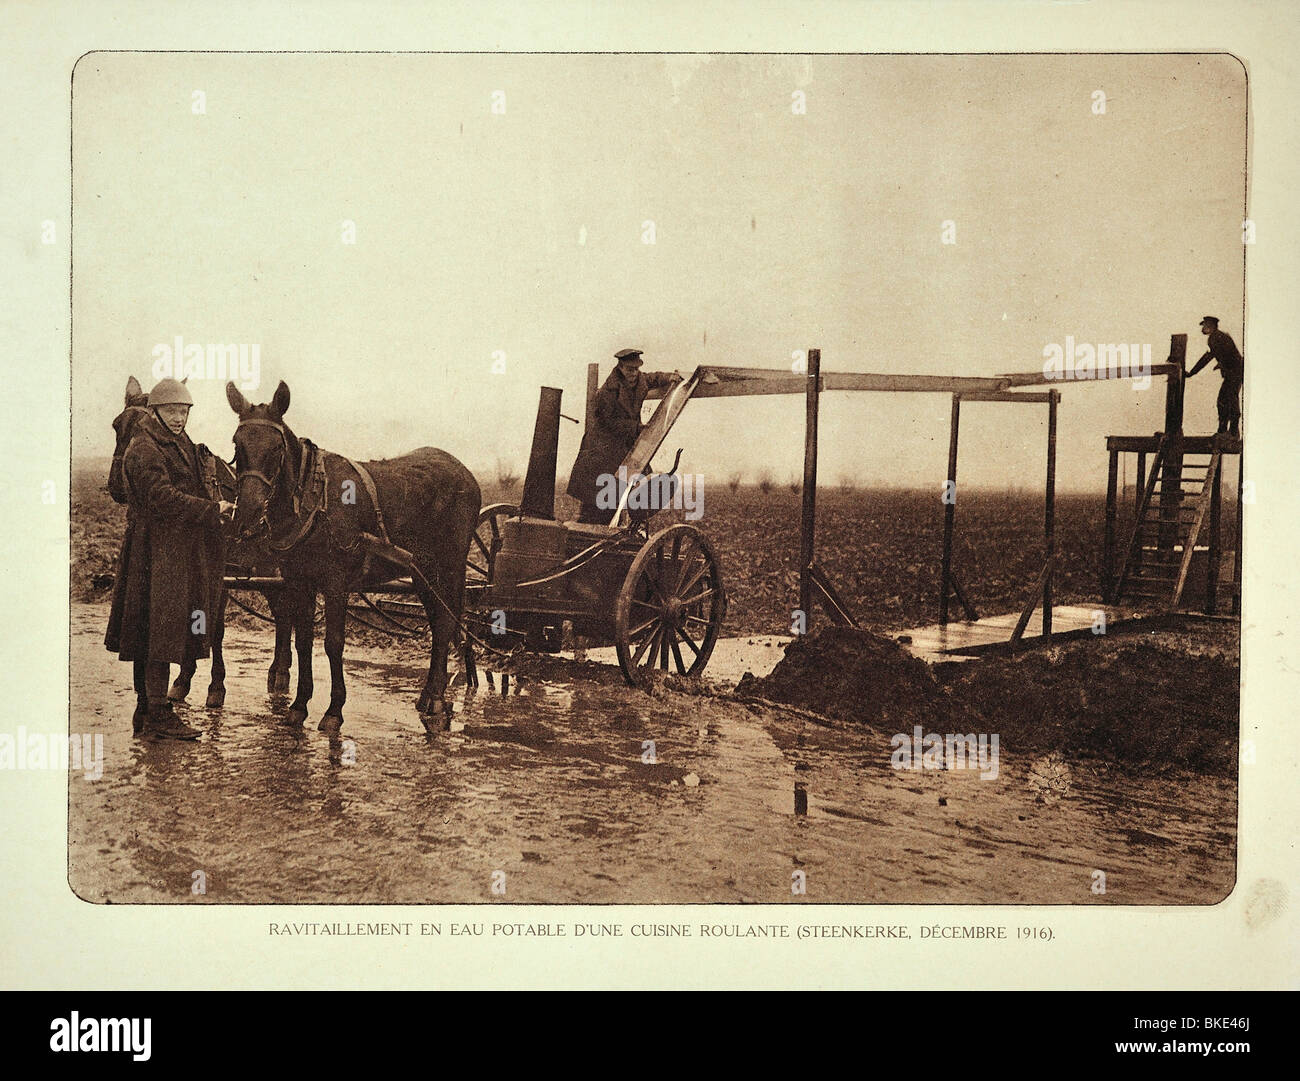 WWI soldiers at drinking water supply for the battlefield at Steenkerke in West Flanders during the First World - Stock Image